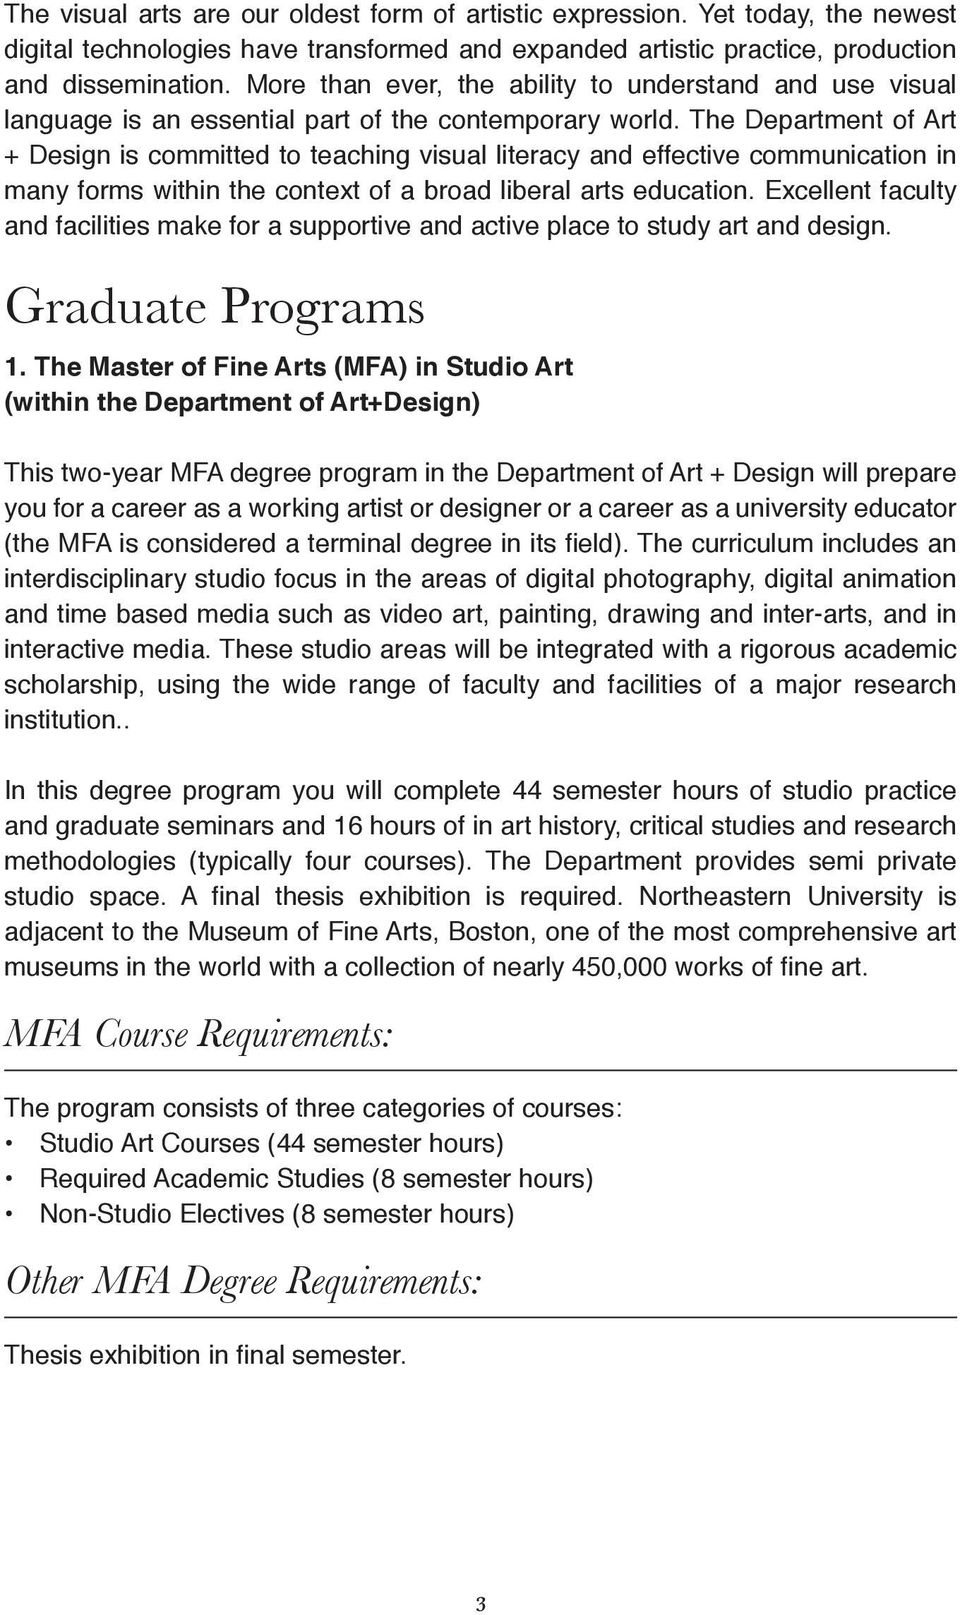 The Department of Art + Design is committed to teaching visual literacy and effective communication in many forms within the context of a broad liberal arts education.